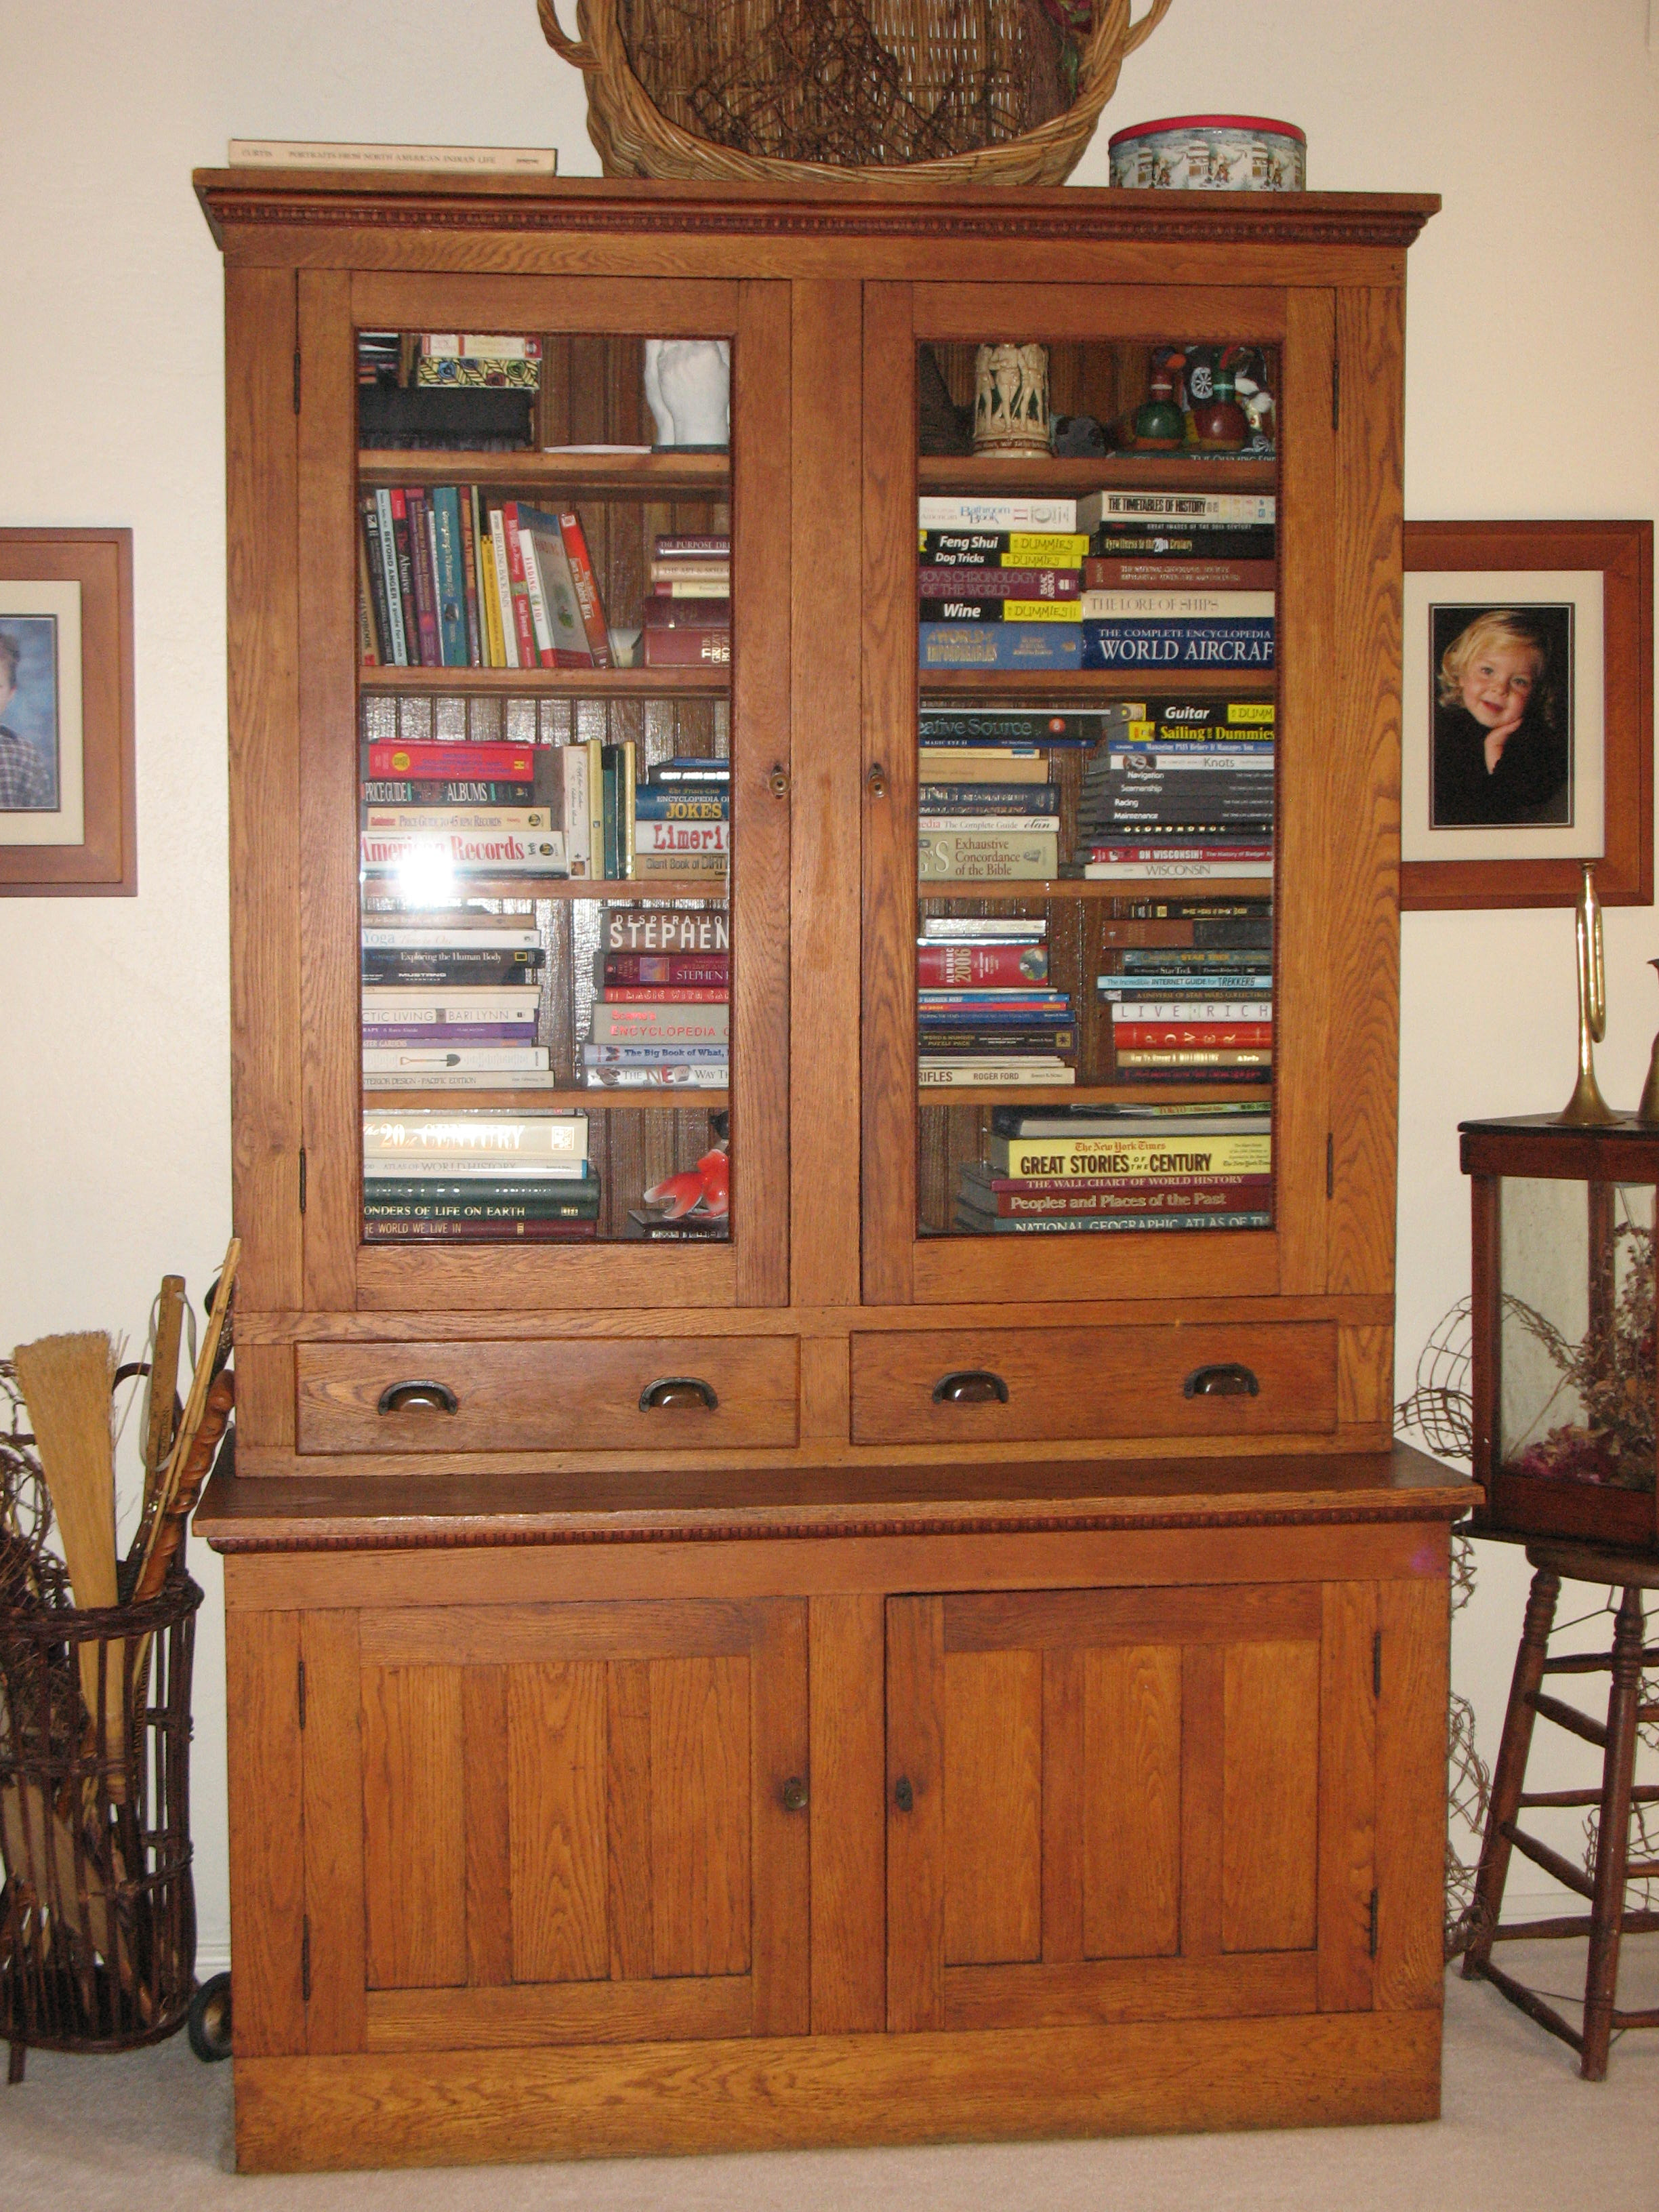 Antique Country Store Display Cabinet - 17 high 17 deep and 17 ...